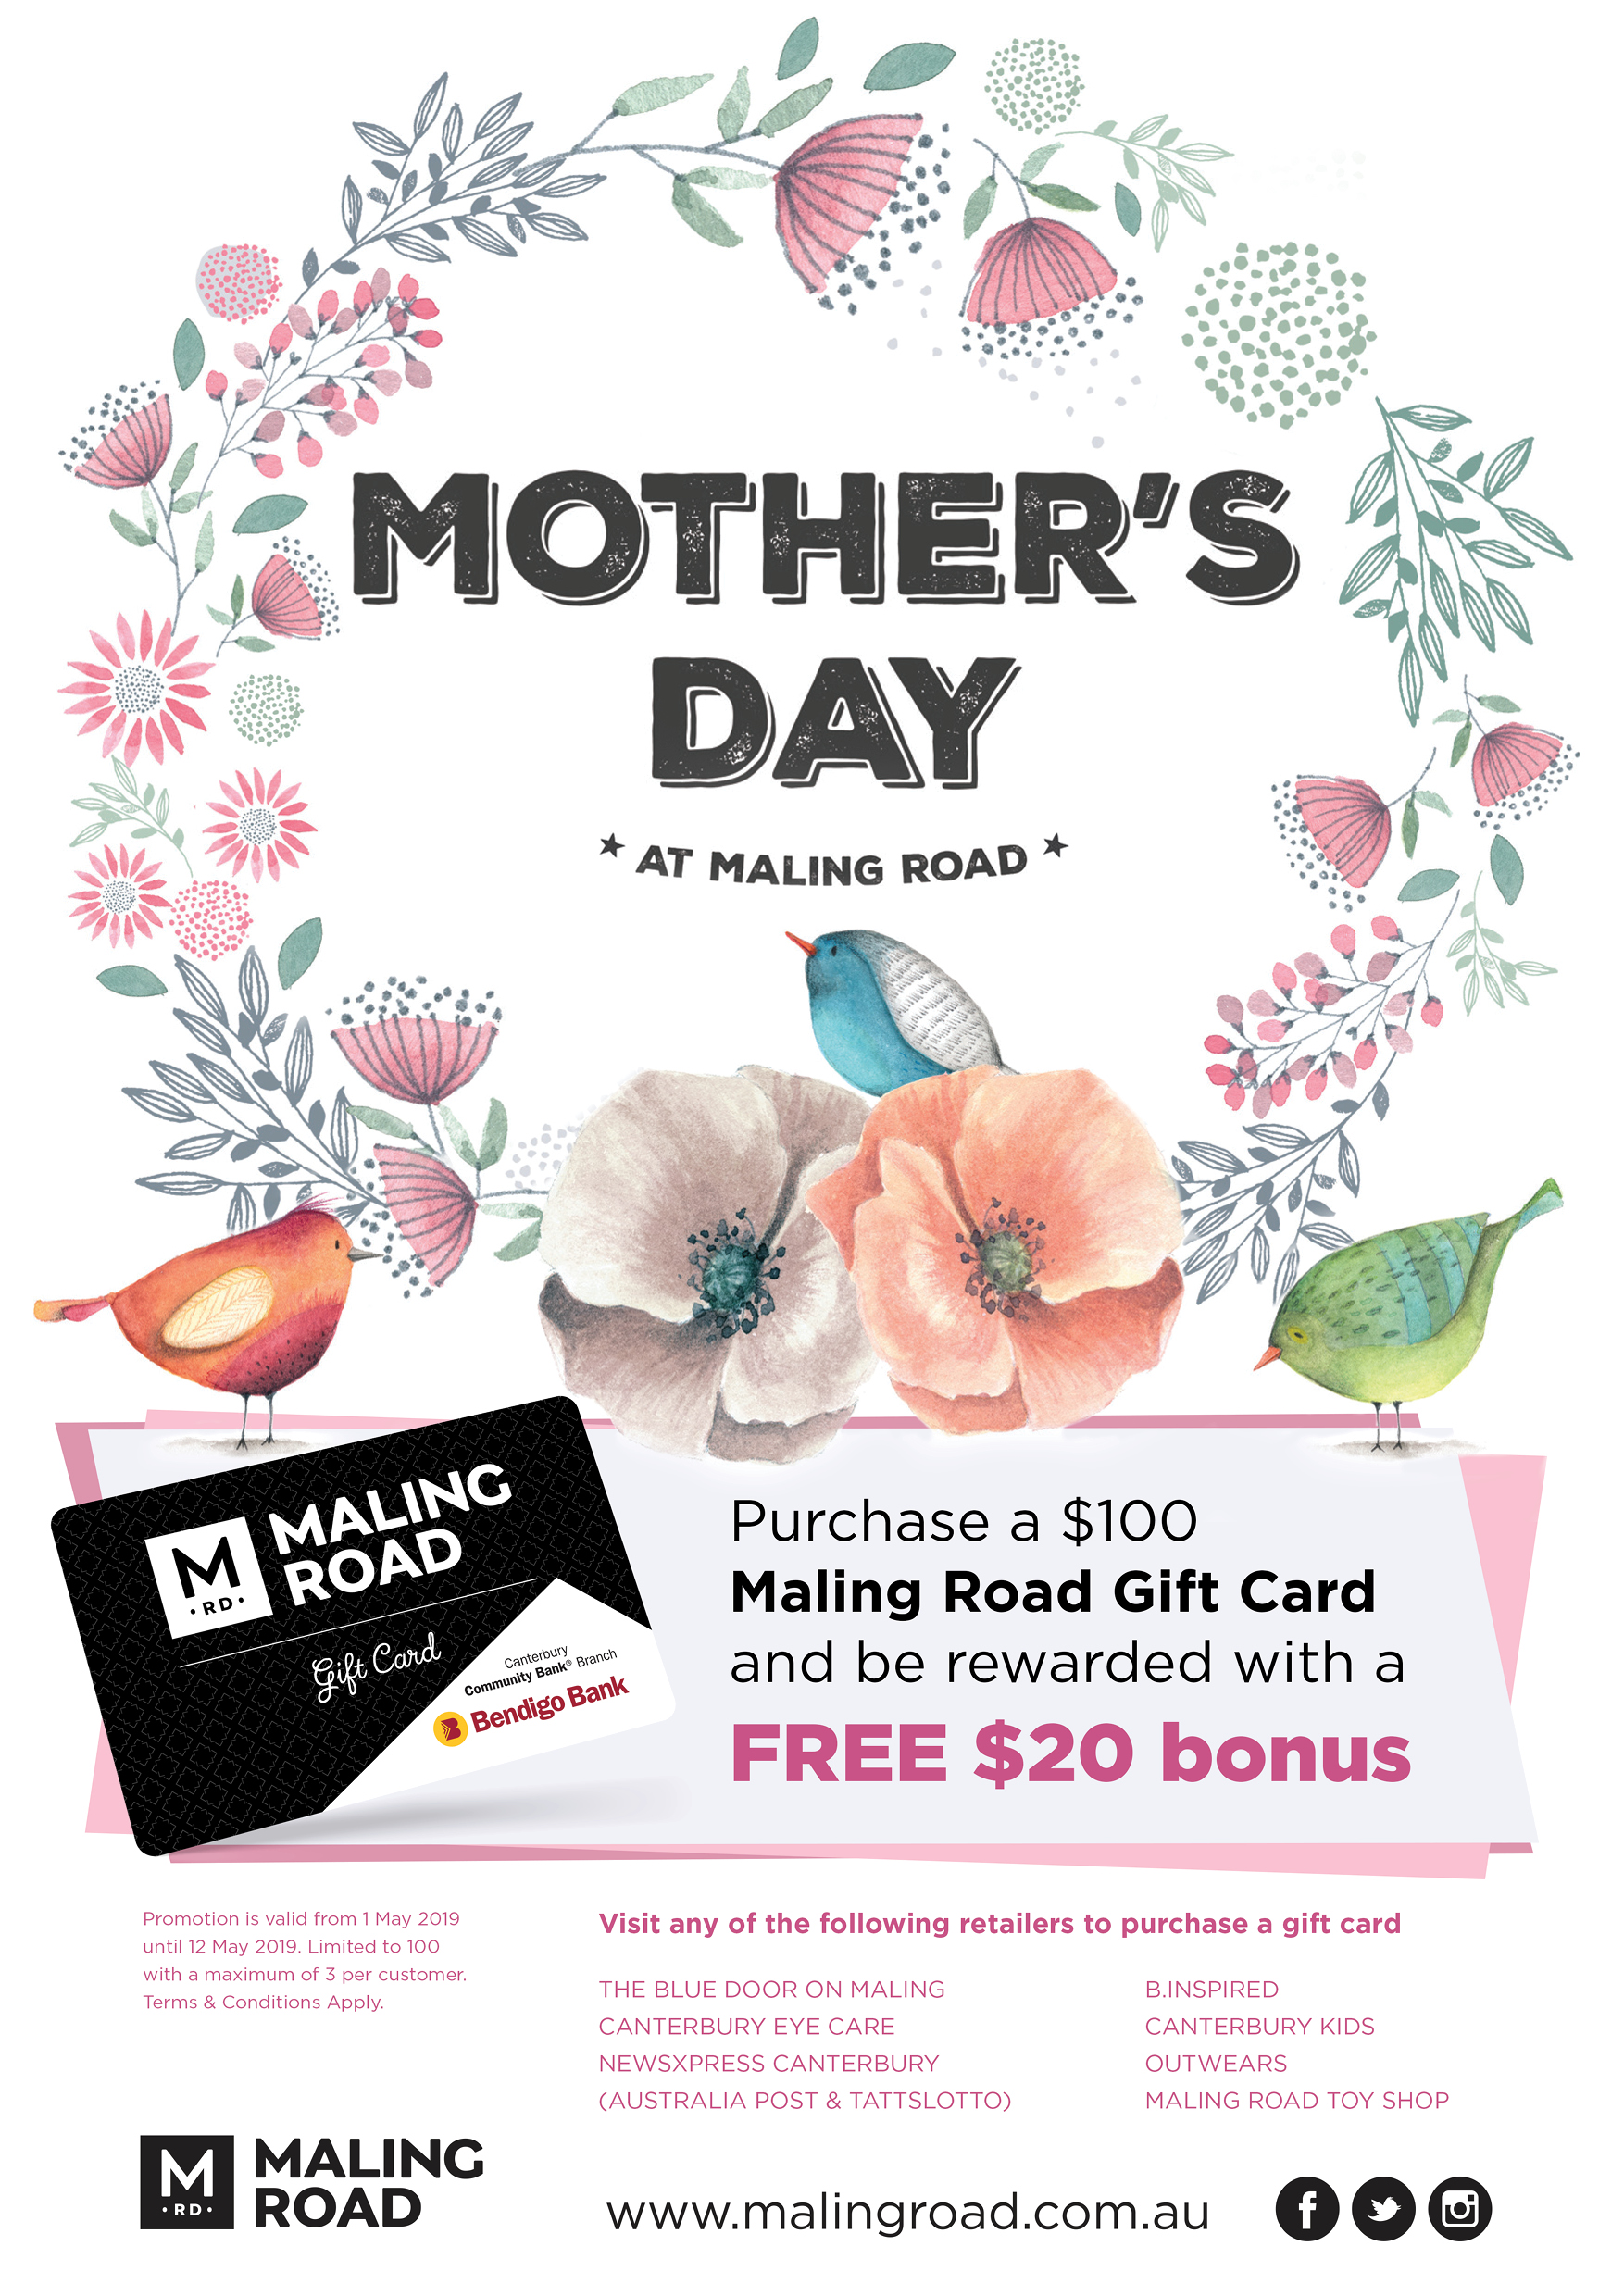 Mother's Day in Maling Road - Maling Road